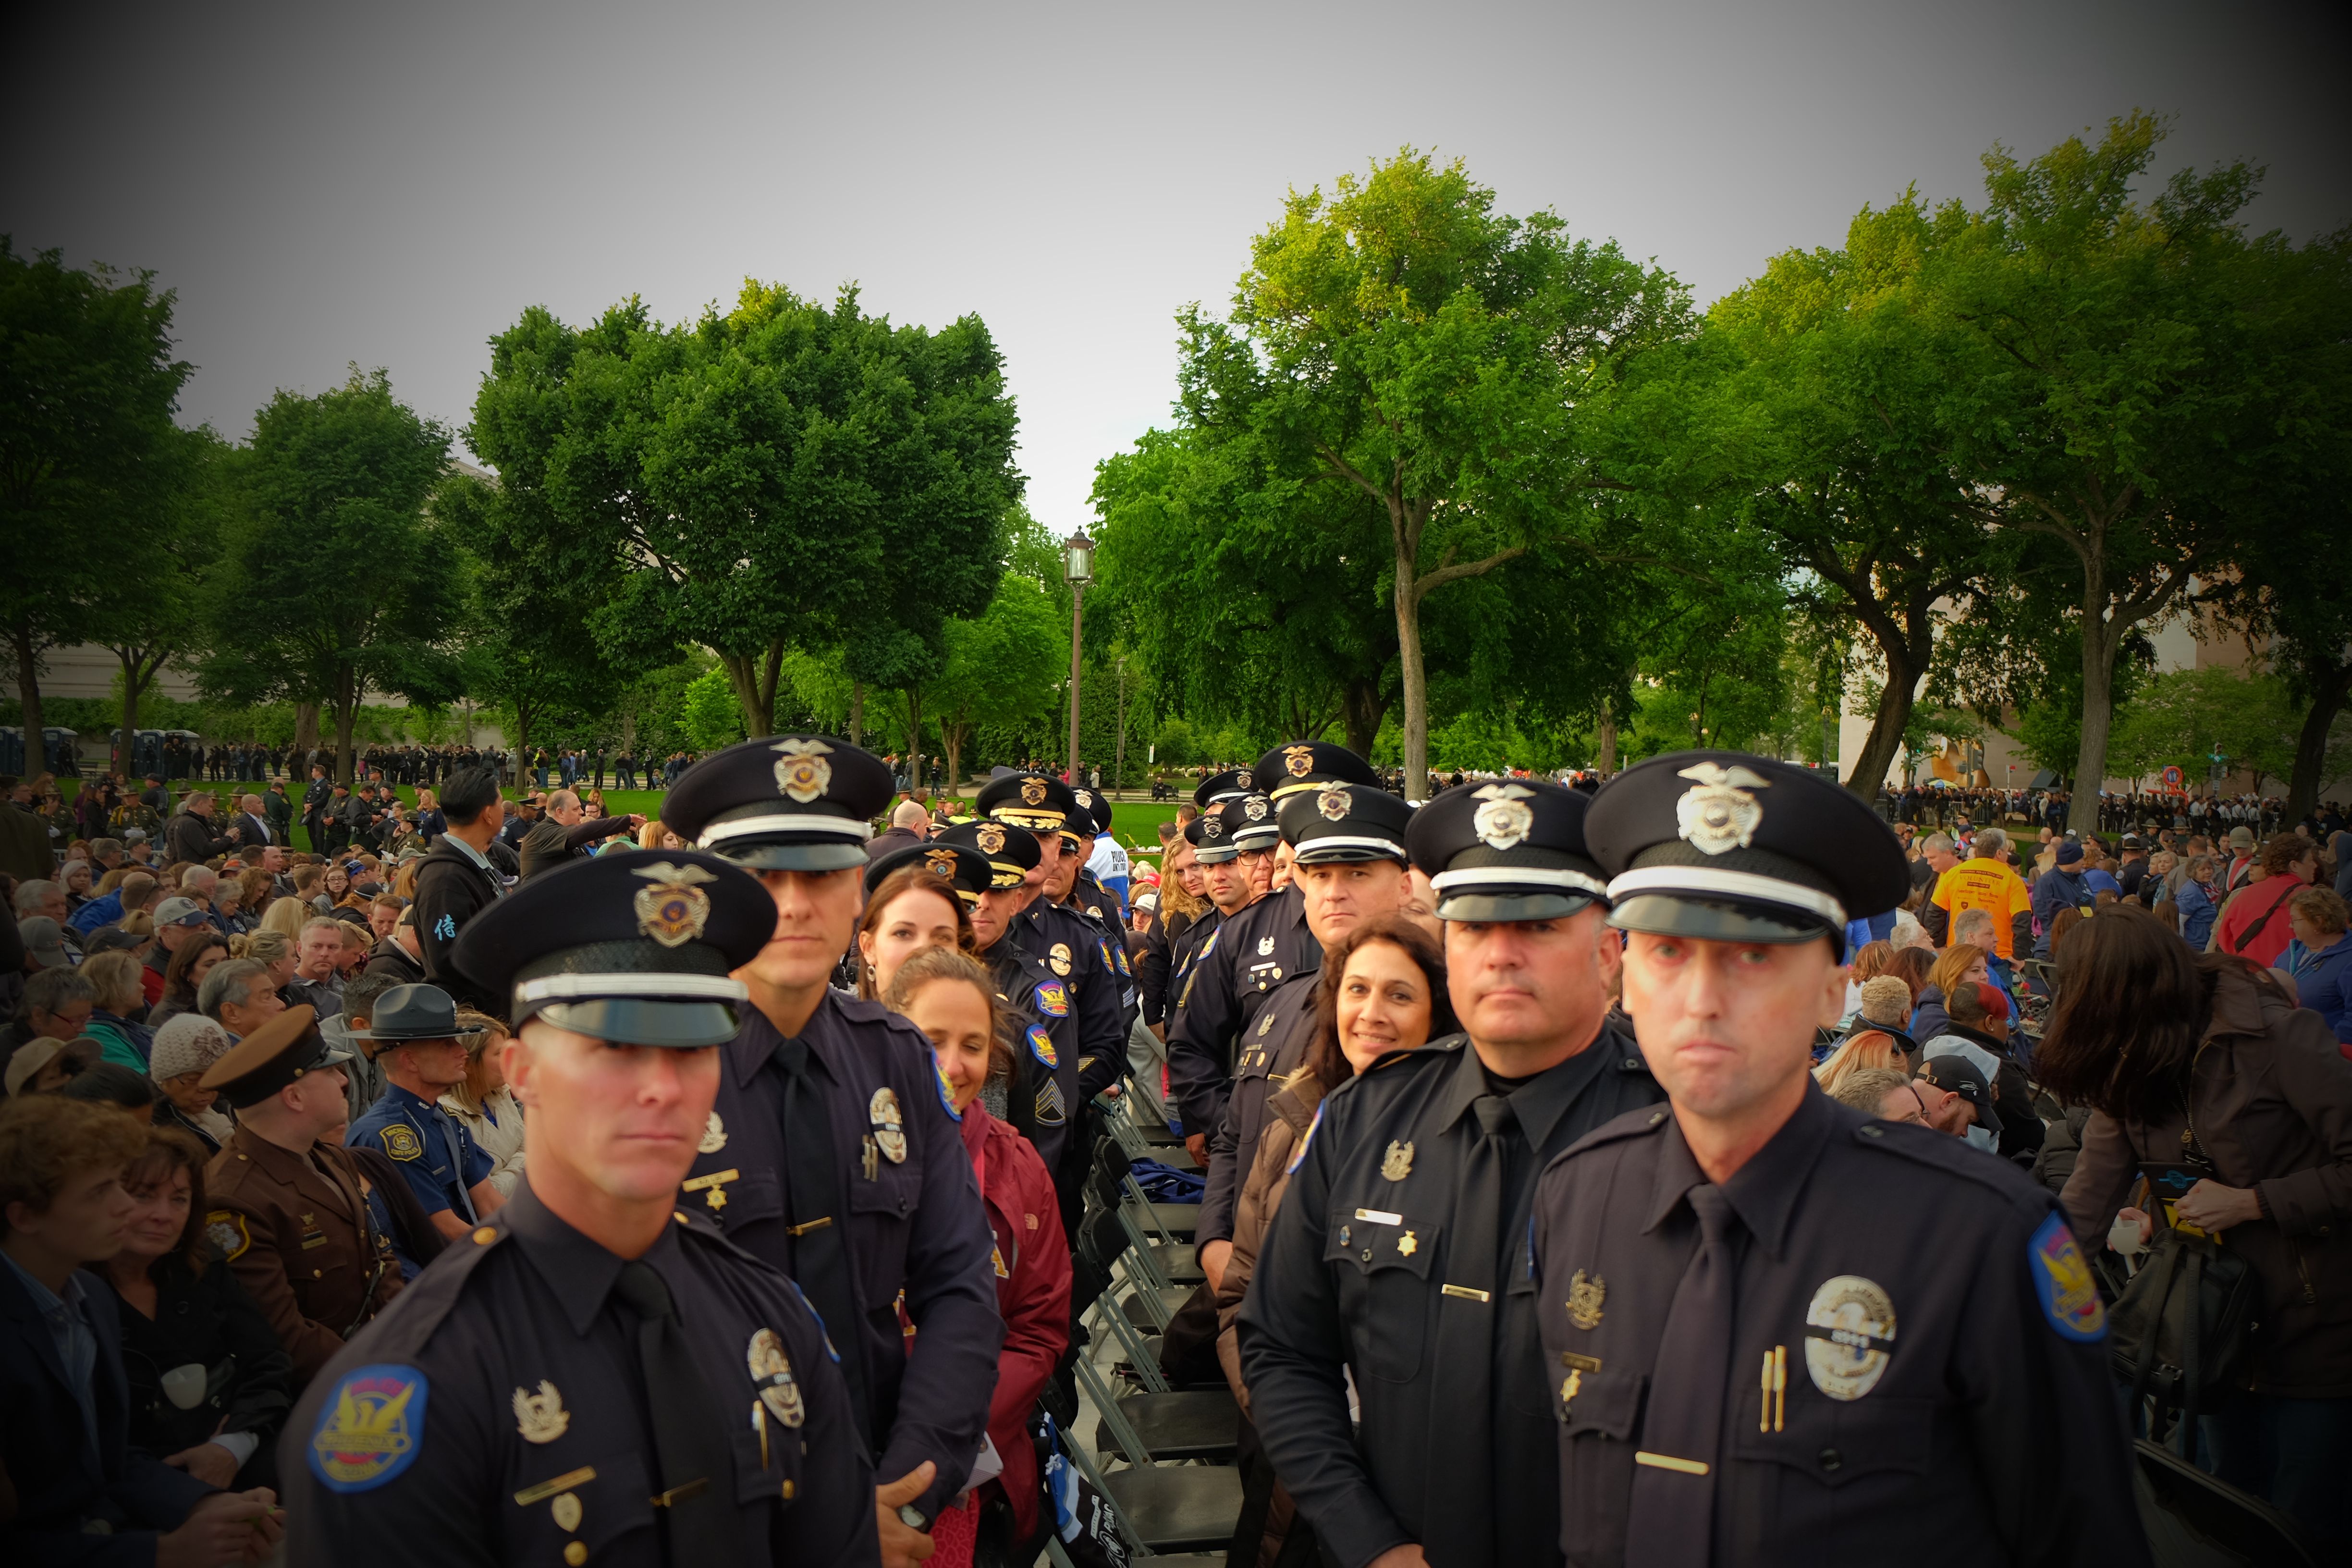 The Unit and Family of Fallen Officer David V. Glasser from the Phoenix Police Department.